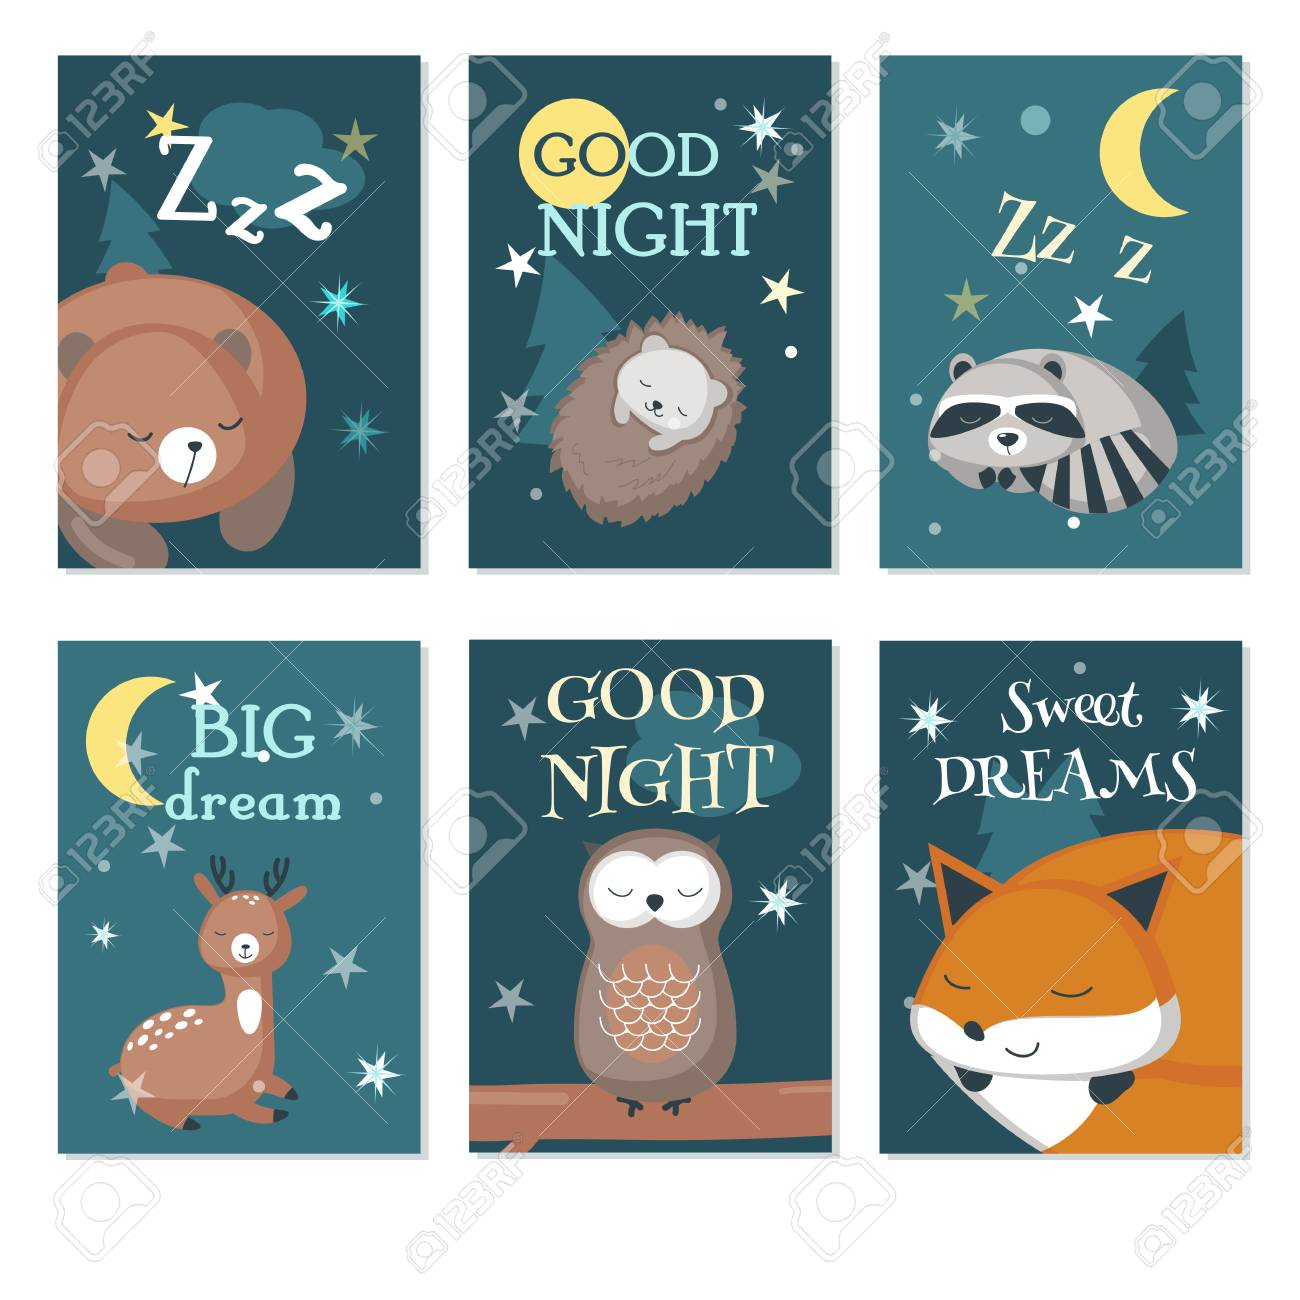 Vector set of cards with sleeping cute animals and handwritten quotations. Vector illustration of funny hedgehog, bear, deer, fox, owl raccoon with night sky landscape. - 109651160